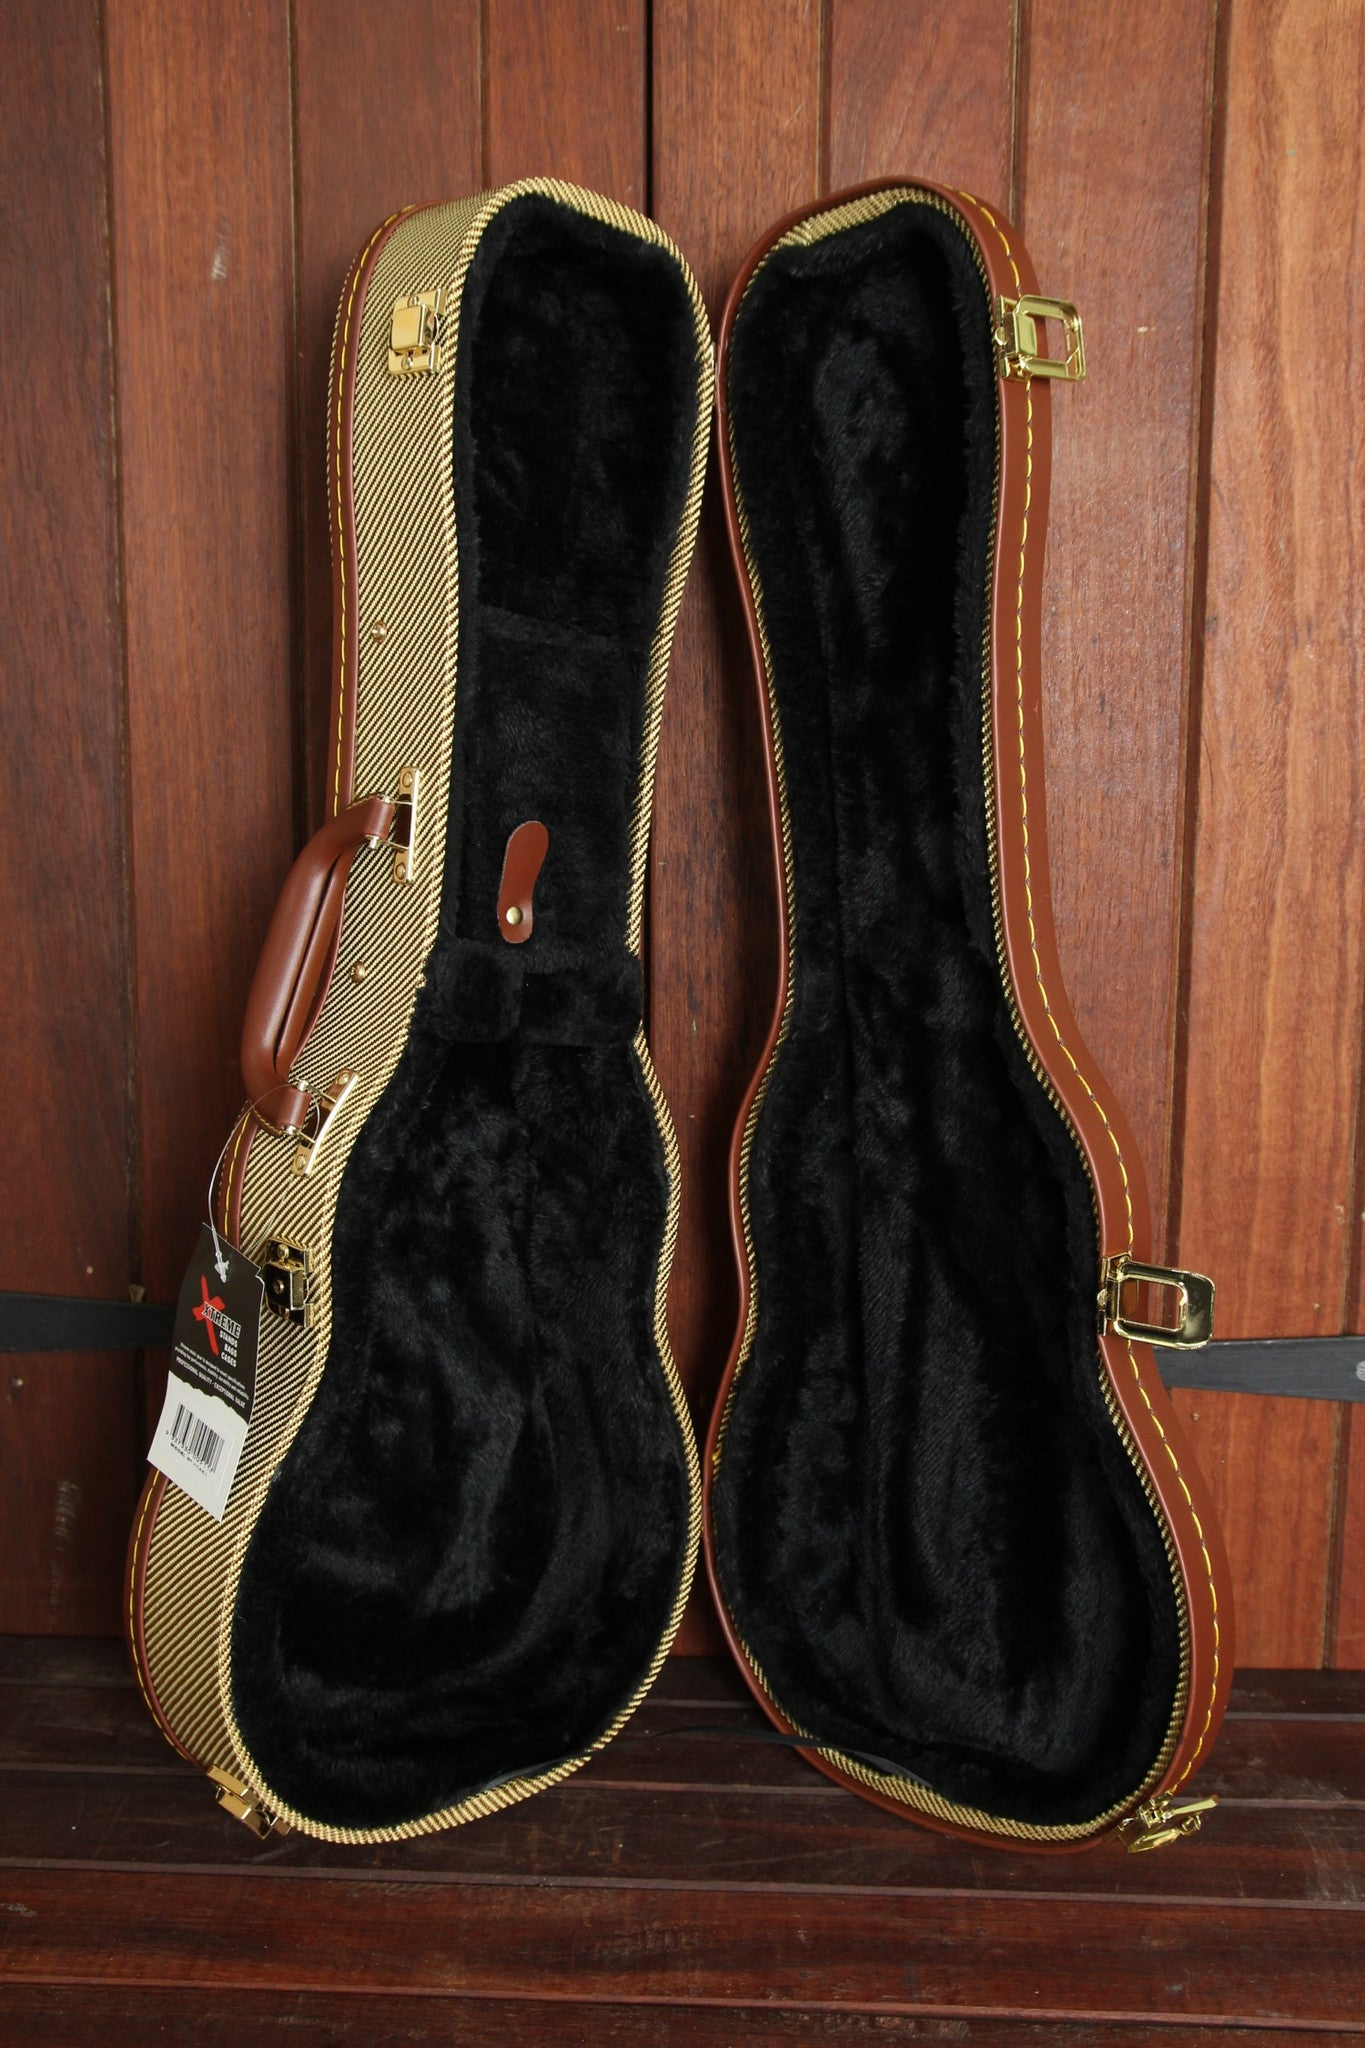 V-Case Soprano Tweed Ukulele Hardshell Case HC460 - The Rock Inn - 1